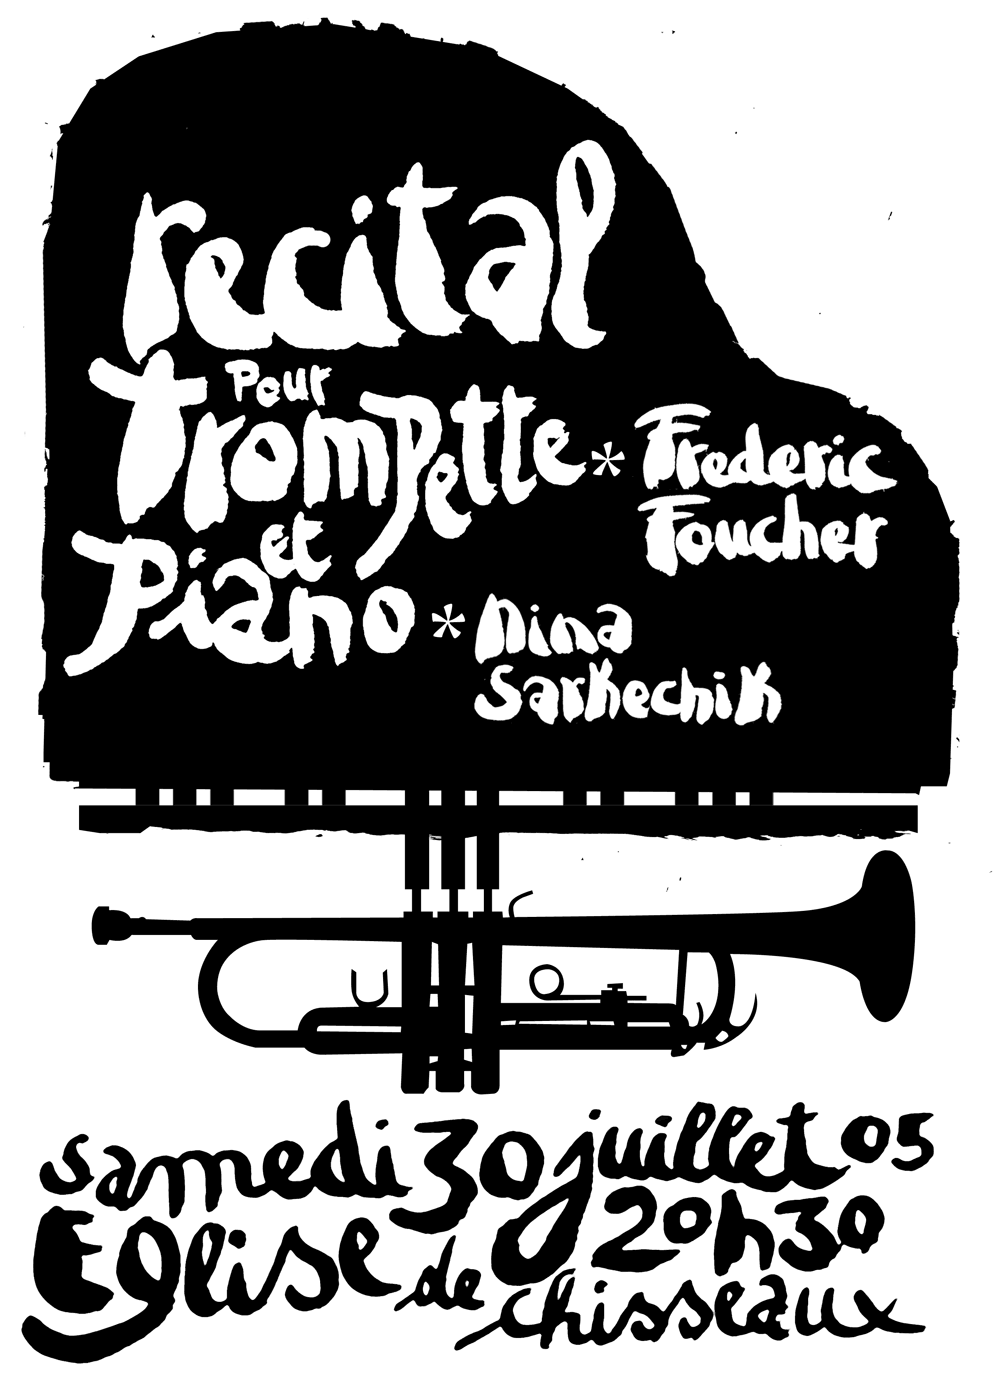 Francois Soulignac - Poster Recital Piano Trumpet - Nima Sarkechik and Frederic Foucher